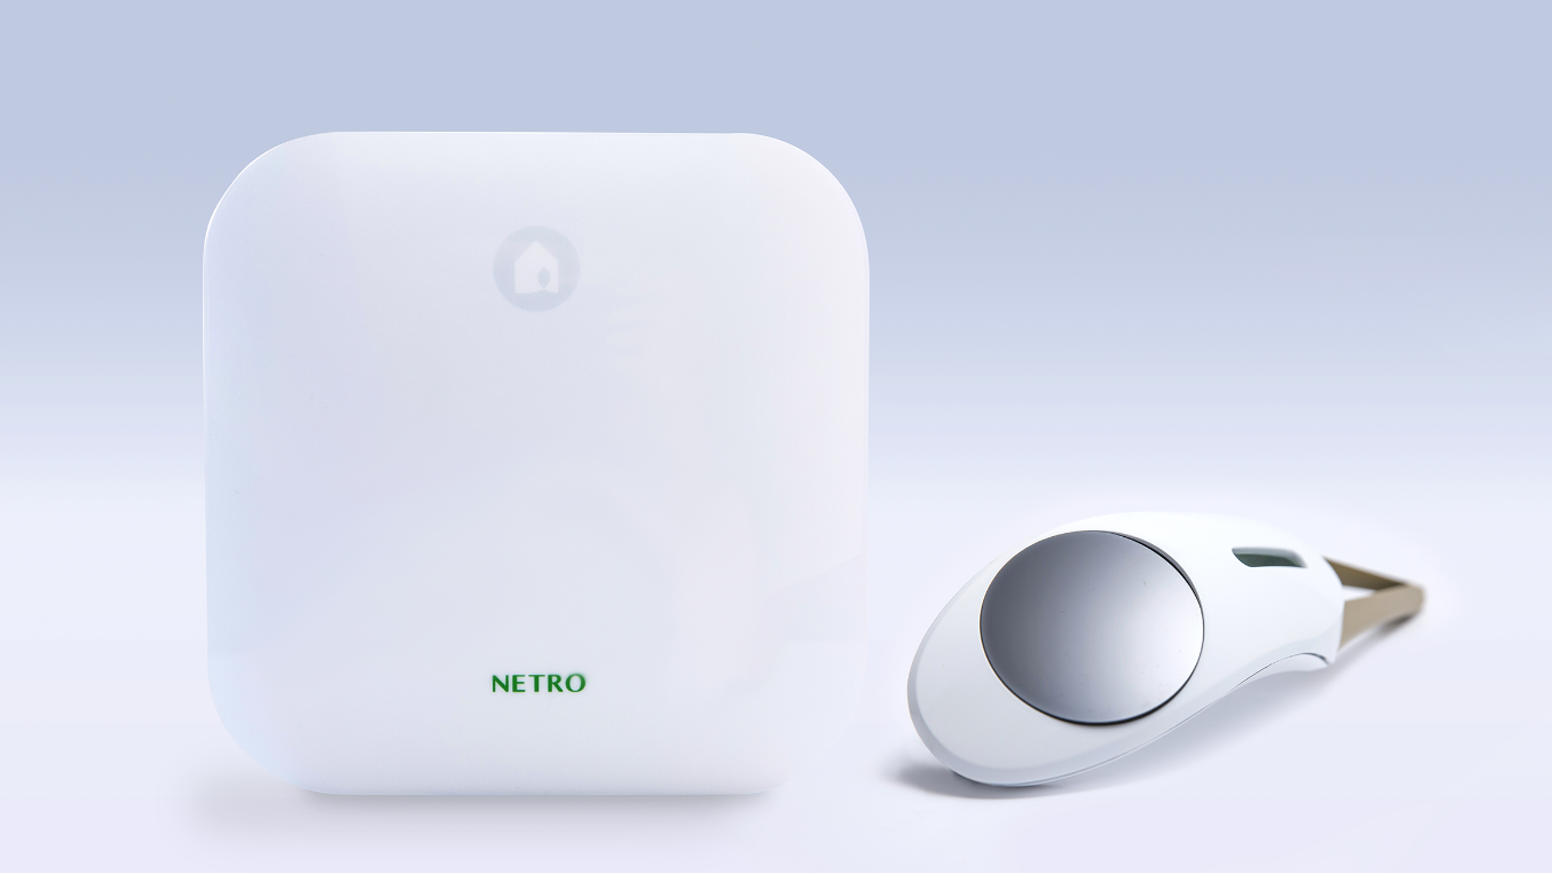 Netro Scientifically Water Your Garden By Kickstarter Technology Build An Electronic Soil Moisture Sensor To Conserve Introducing Sprite The Cloud Based Watering Controller And Whisperer Solar Powered